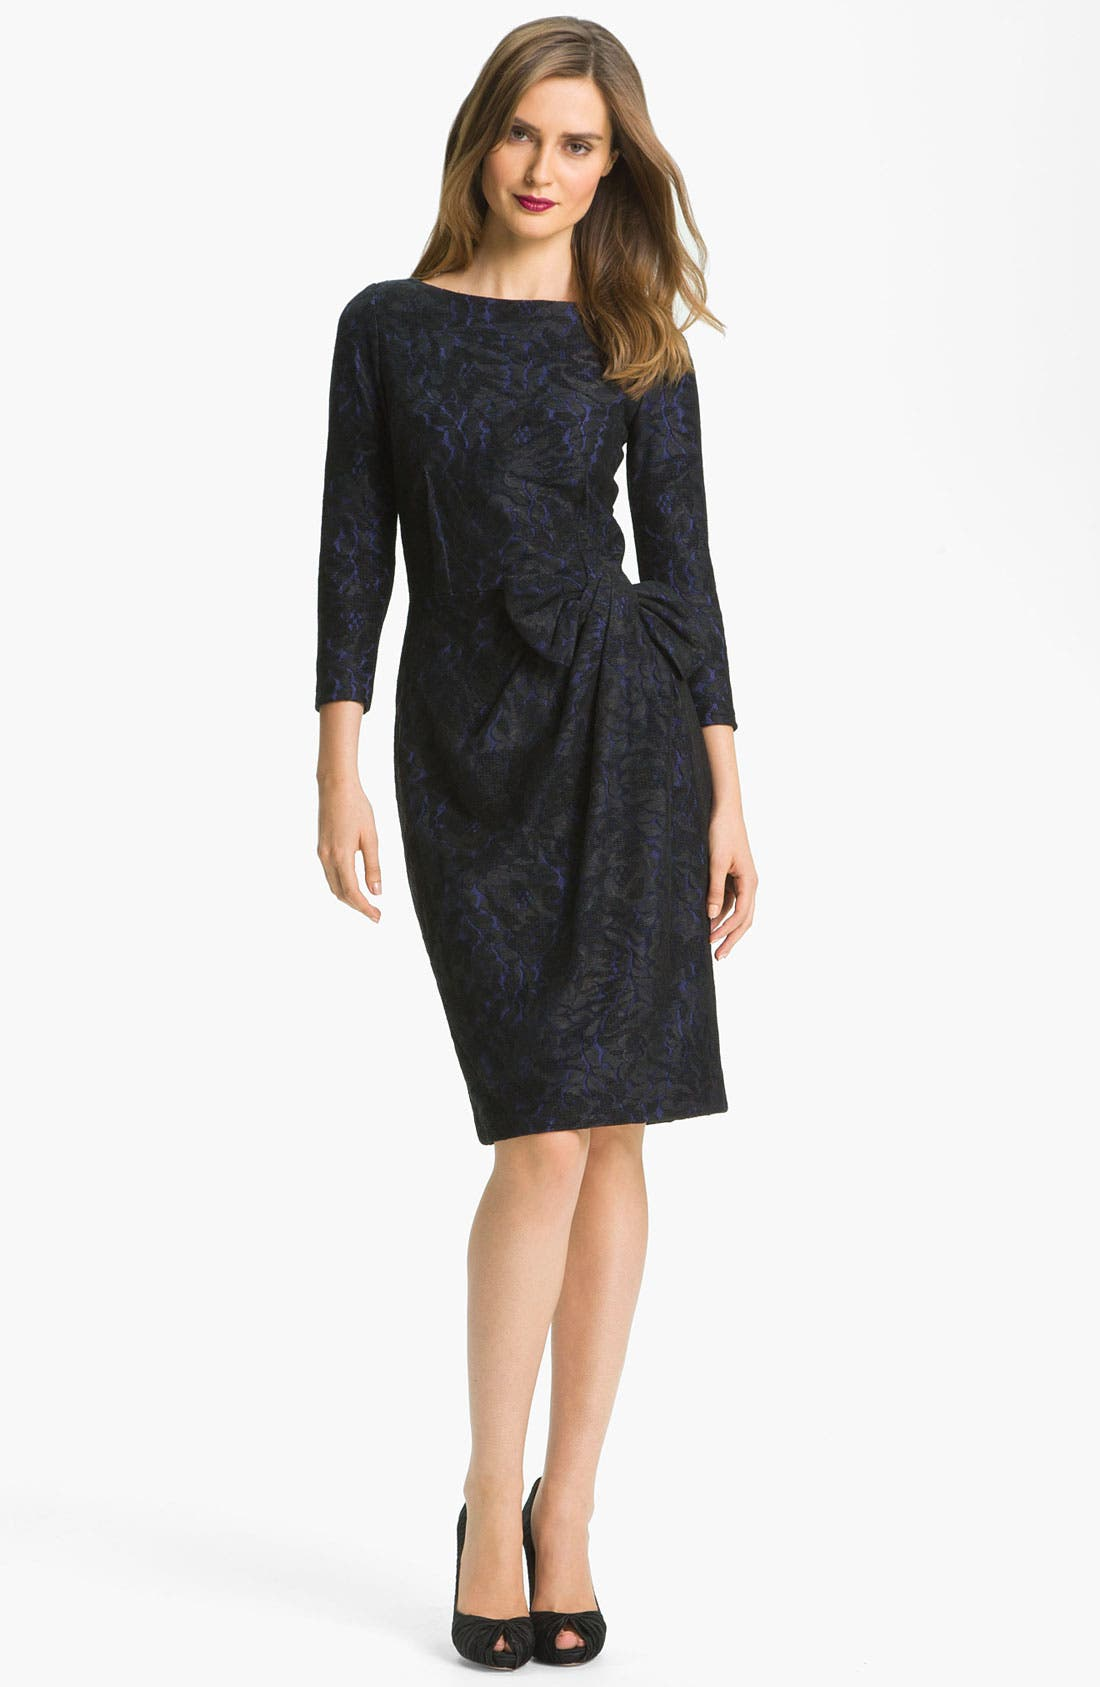 Alternate Image 1 Selected - David Meister Textured Bow Detail Sheath Dress